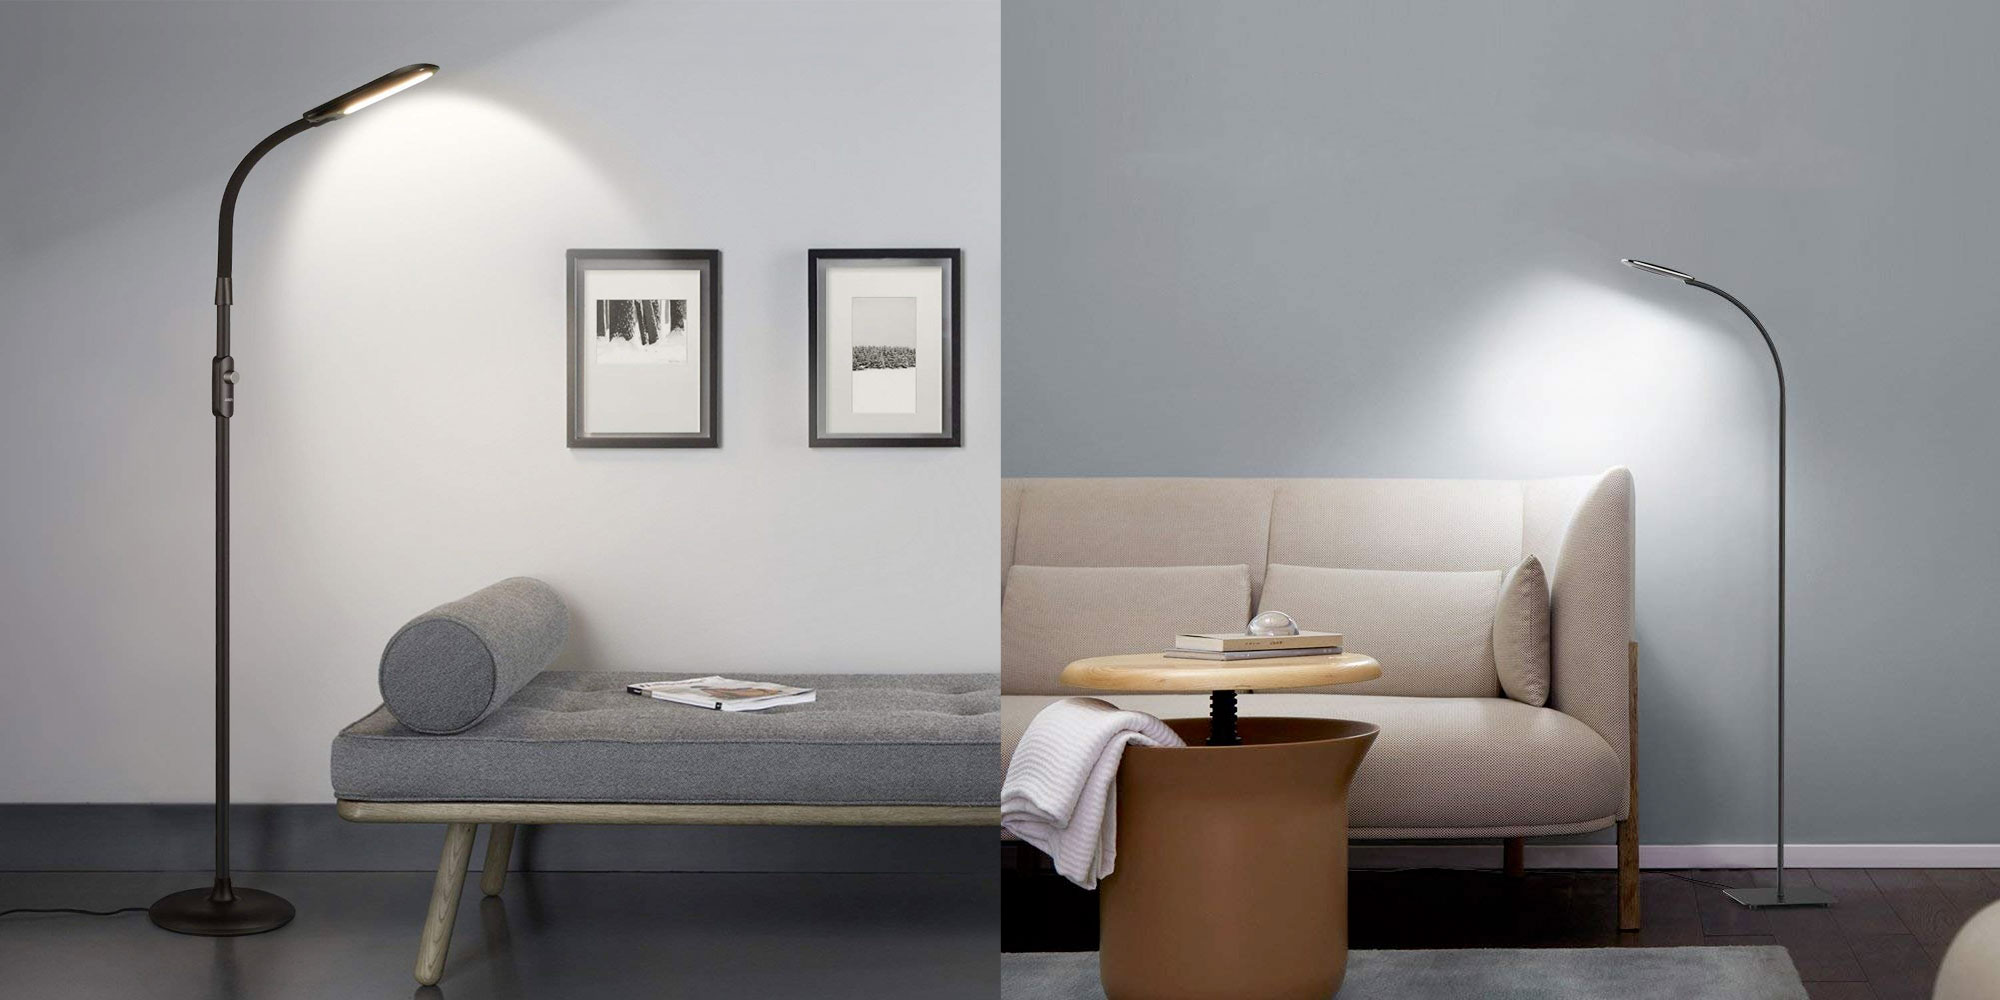 These LED lamps are perfect to brighten up any living space w/ prices from $28.50 shipped